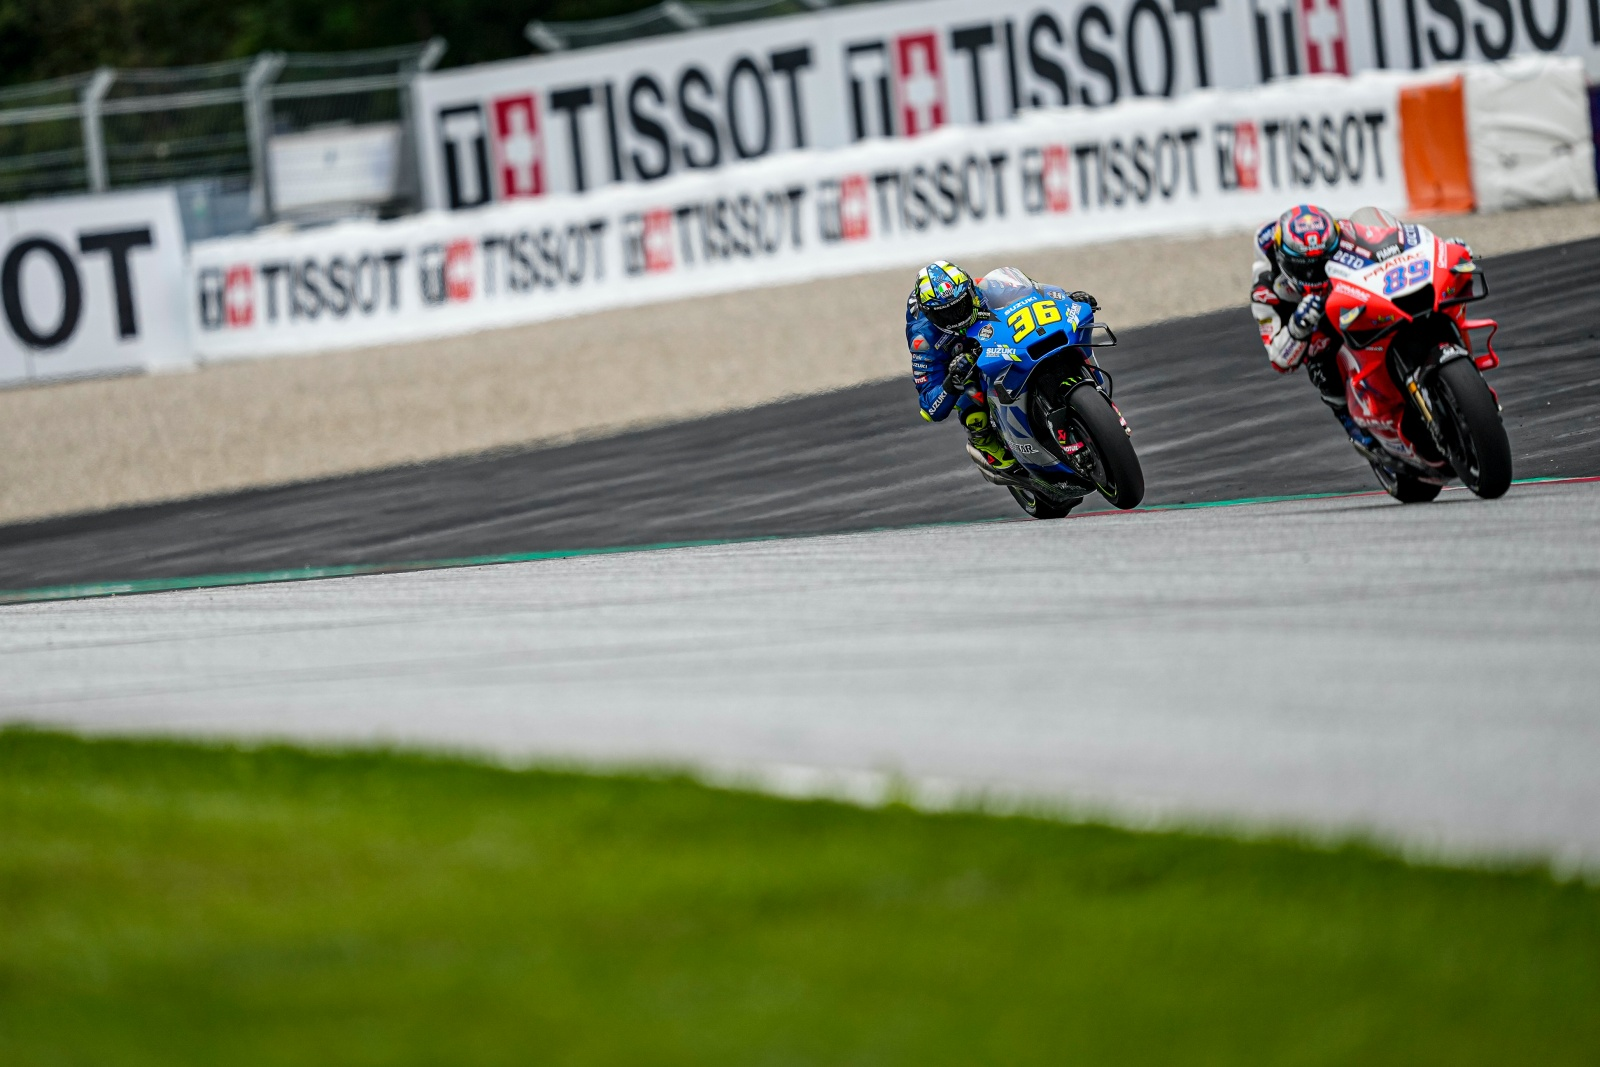 SUZUKI HUNGRY FOR MORE ON SECOND WEEKEND IN AUSTRIA